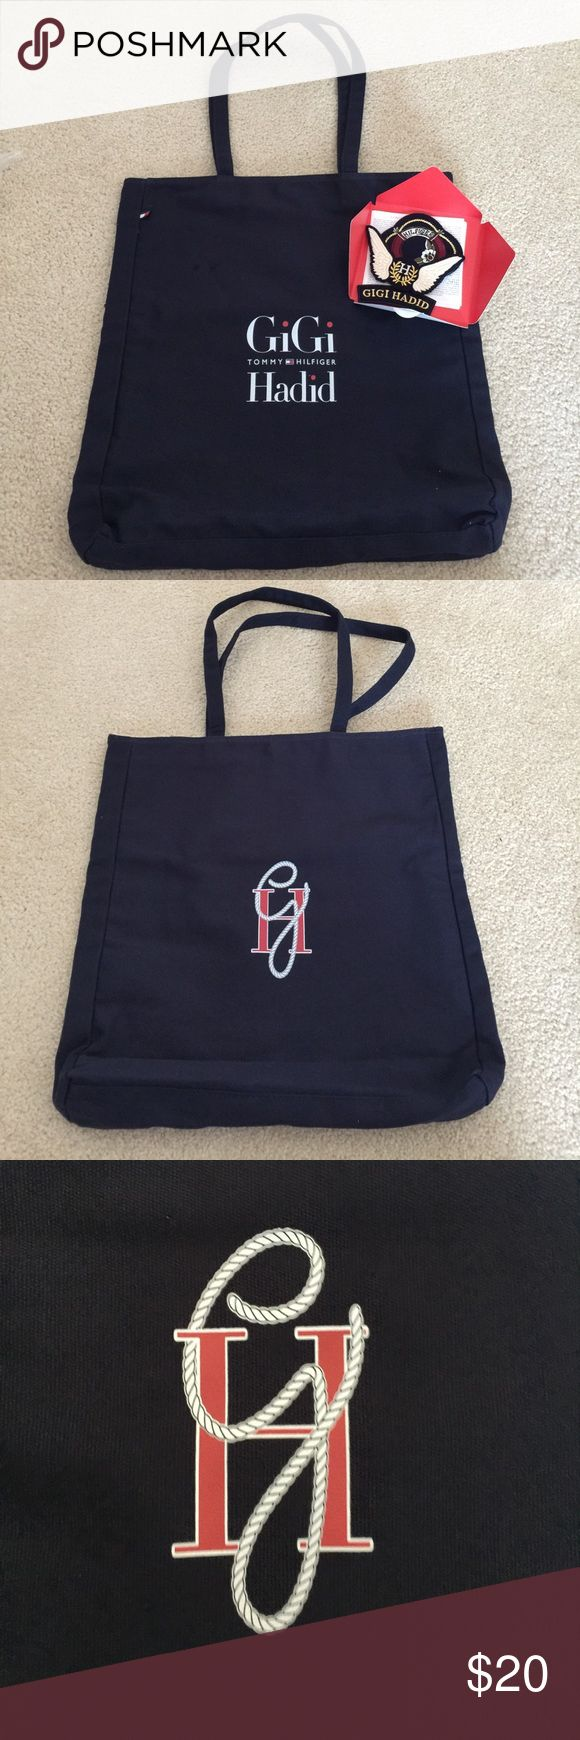 Gigi Hadid for Tommy Hilfiger Tote bag brand new Gigi Hadid for Tommy Hilfiger tote bag navy blue with patches . Brand new never used comes in original plastic . Cotton tote with iron on patches . Mint condition Tommy Hilfiger Bags Totes